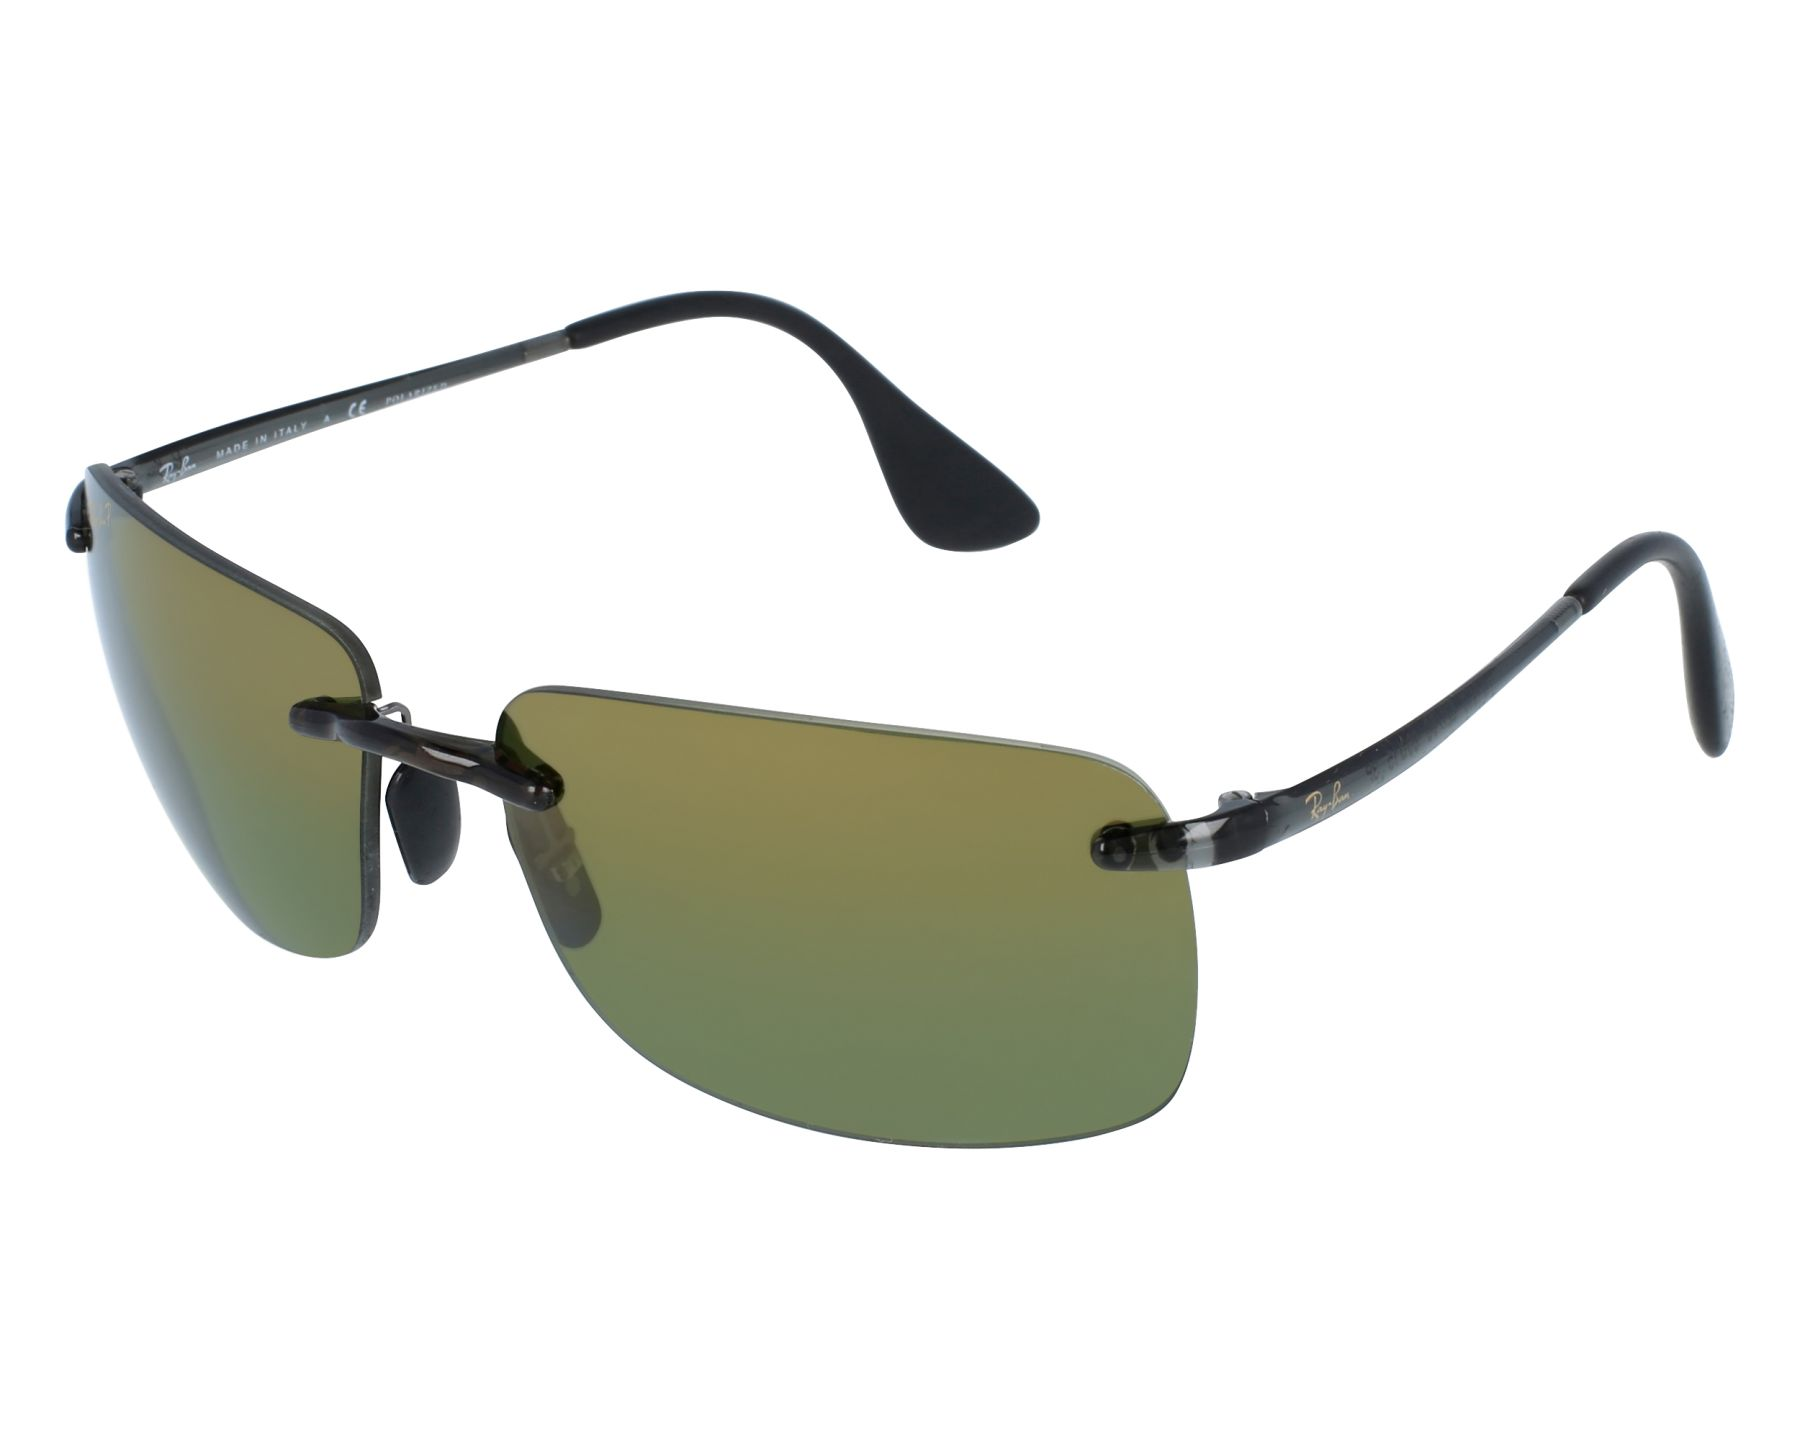 c4da9616002 Sunglasses Ray-Ban RB-4255 621 6O 60-15 Grey front view